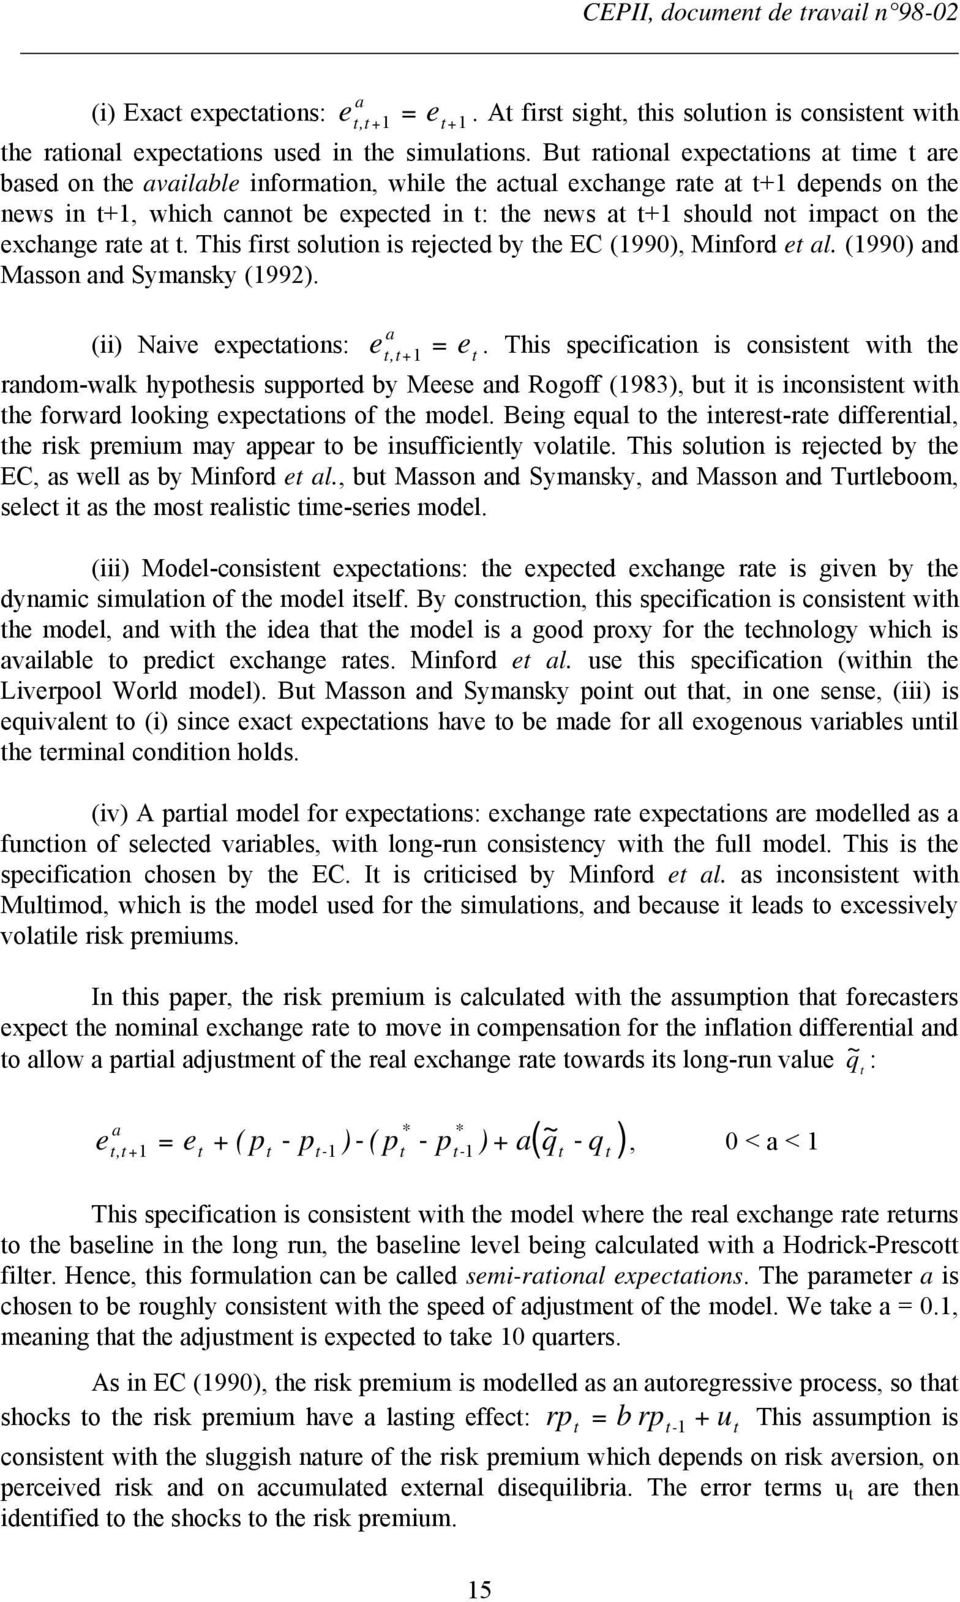 impact on the exchange rate at t. This first solution is rejected by the EC (1990), Minford et al. (1990) and Masson and Symansky (1992). a (ii) Naive expectations: et, t e + 1 = t.